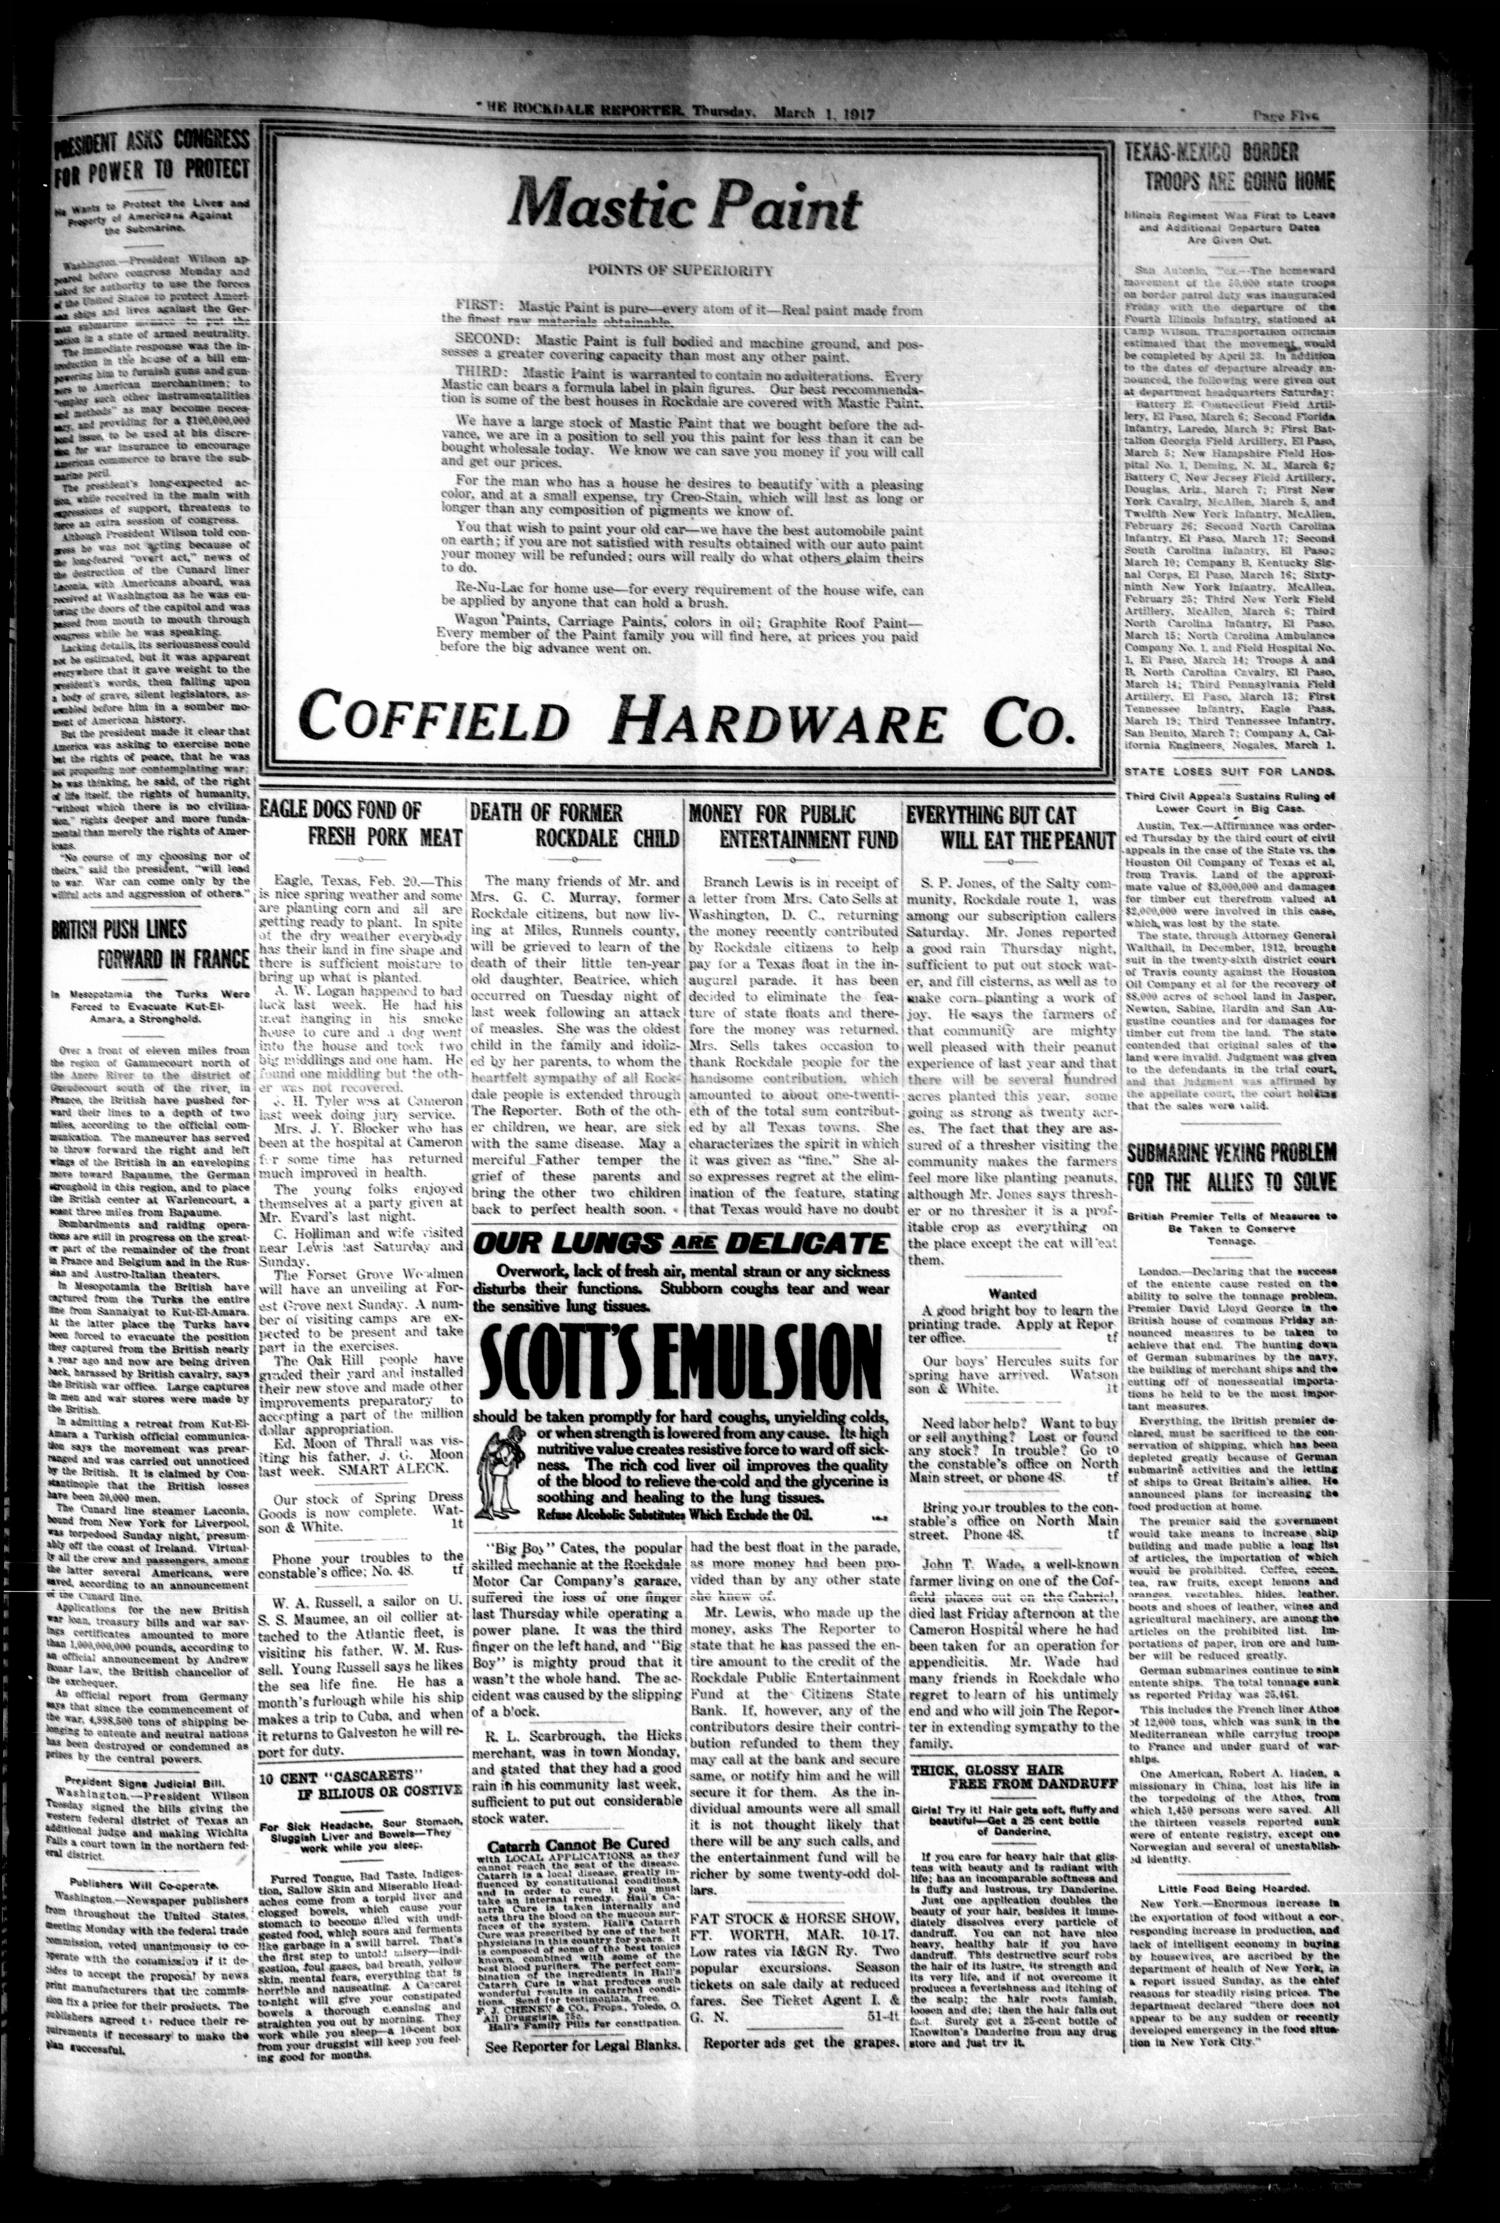 The Rockdale Reporter and Messenger (Rockdale, Tex.), Vol. 44, No. 52, Ed. 1 Thursday, March 1, 1917 - Page 5 of 8 - The Portal to Texas History